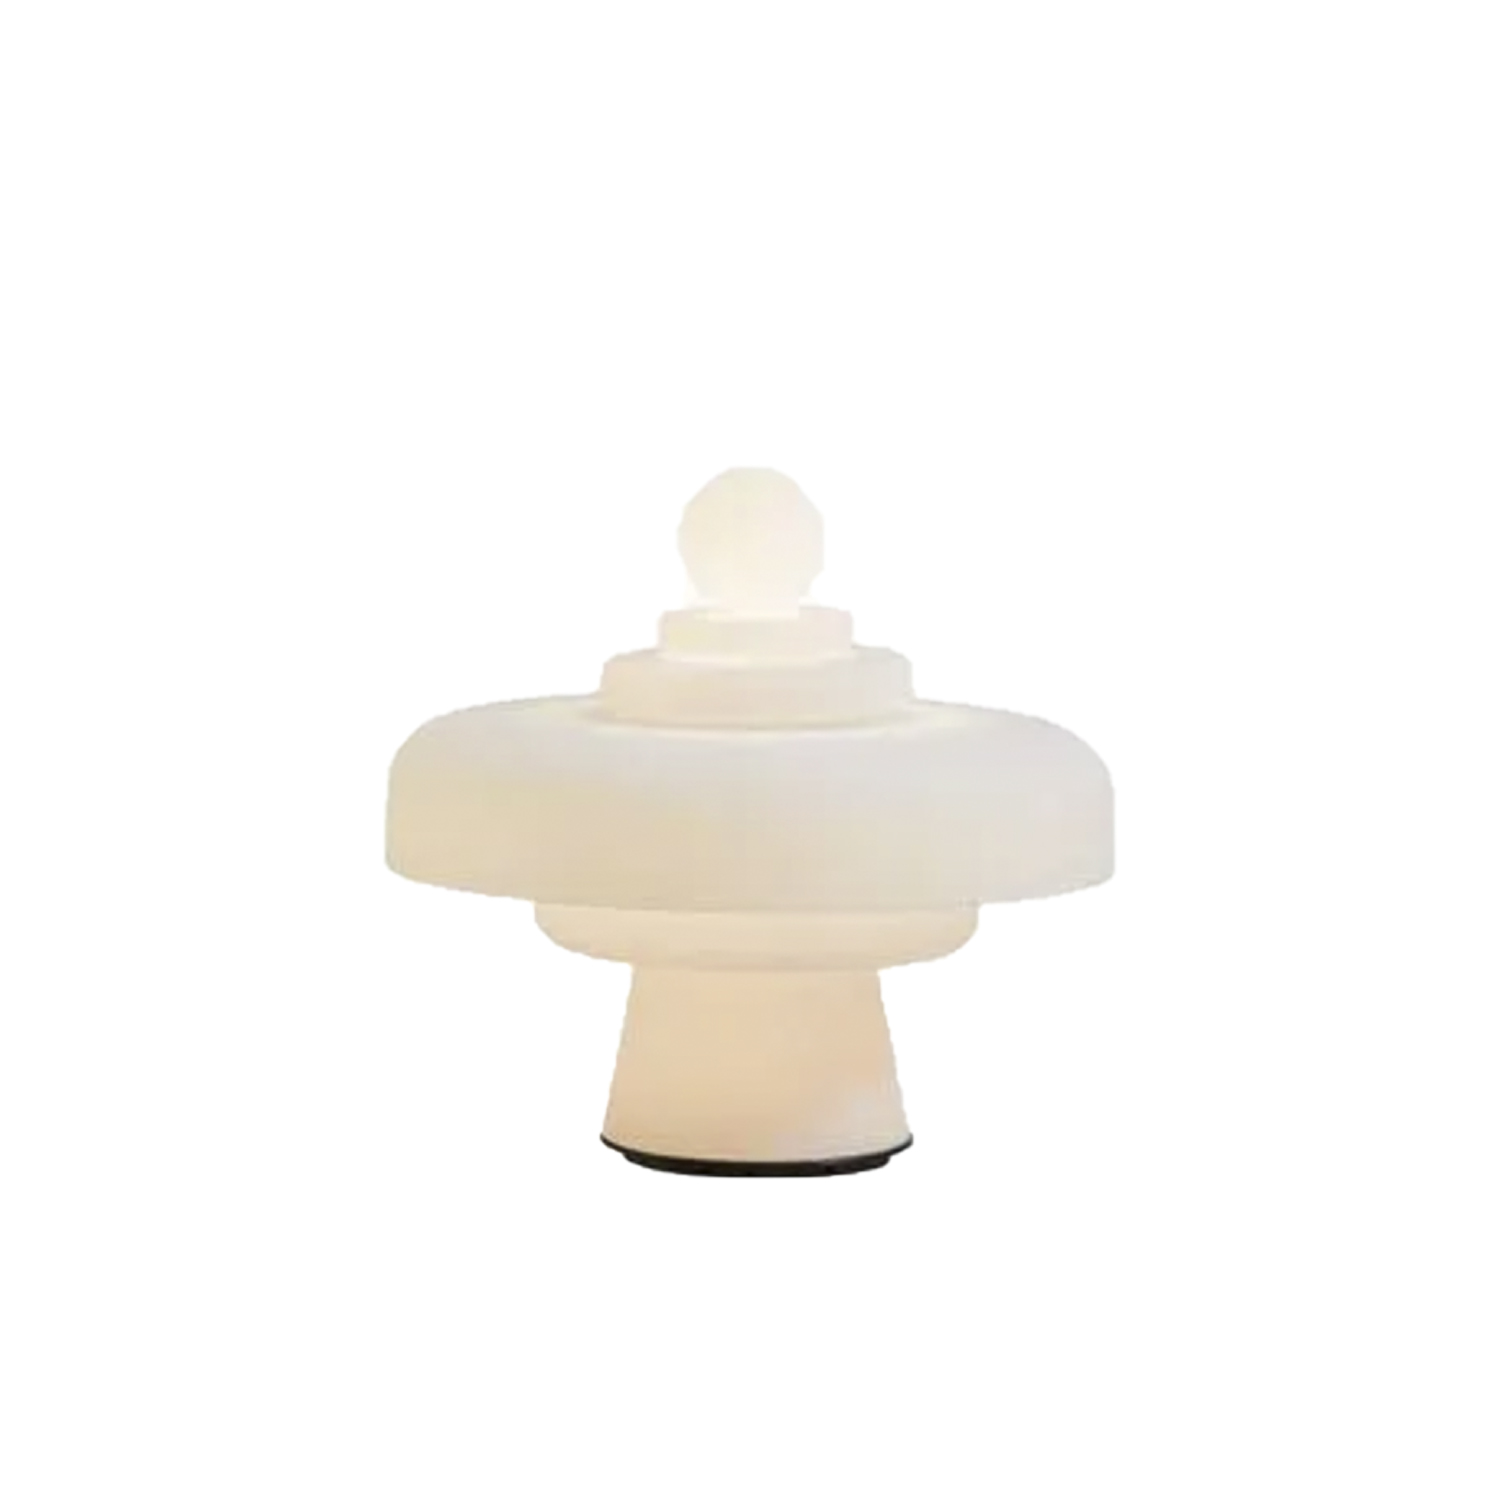 Regina Table Lamp - Inspired by the game of chess with their sinuous shapes, Re and Regina are the key characters of the chessboard. Their profiles stand out clearly in the white light diffused by opalescent glass. Real individuals, they play in pairs alternating spheres, cylinders and rings of light. Vertical the King (Re), horizontal the Queen (Regina). They can be placed next to each other or in different spots in the same room, be used as floor or table lamps, on a coffee table or a desk, both Re and Regina have the presence to create a context. The dimmer allows to modulate the light making it a surreal element with different degrees of intensity: an element of representation that releases energy in space when the light is bright, abstract and restful when the light is soft and low. Glass sculptures during the day in environments illuminated by natural light. Re and Regina are inspired by the history of art, from Cosmè Tura to the Flemish interiors of Jan Van Eych to the conceptual imagery of Marcel Duchamp who plays chess as a lifestyle. Re and Regina are Cartesian axes of a universe that crosses ages and cultures. In 2020 FontanaArte reintroduces these glass lamps as a sign of the expressive wealth contained in the great repertory of ideas that is the FontanaArte catalogue and, most importantly an homage to the talent of an artist who had a gift for calibrating the formal tension of a utilitarian object on a quest for unity among the arts.  Dimmable diffused-light table or floor lamp. Painted metal frame. Diffuser in satin-blown glass.  Black power cable, dimmer and plug. Power supply with interchangeable plugs (europe - usa). Integrated LED. | Matter of Stuff